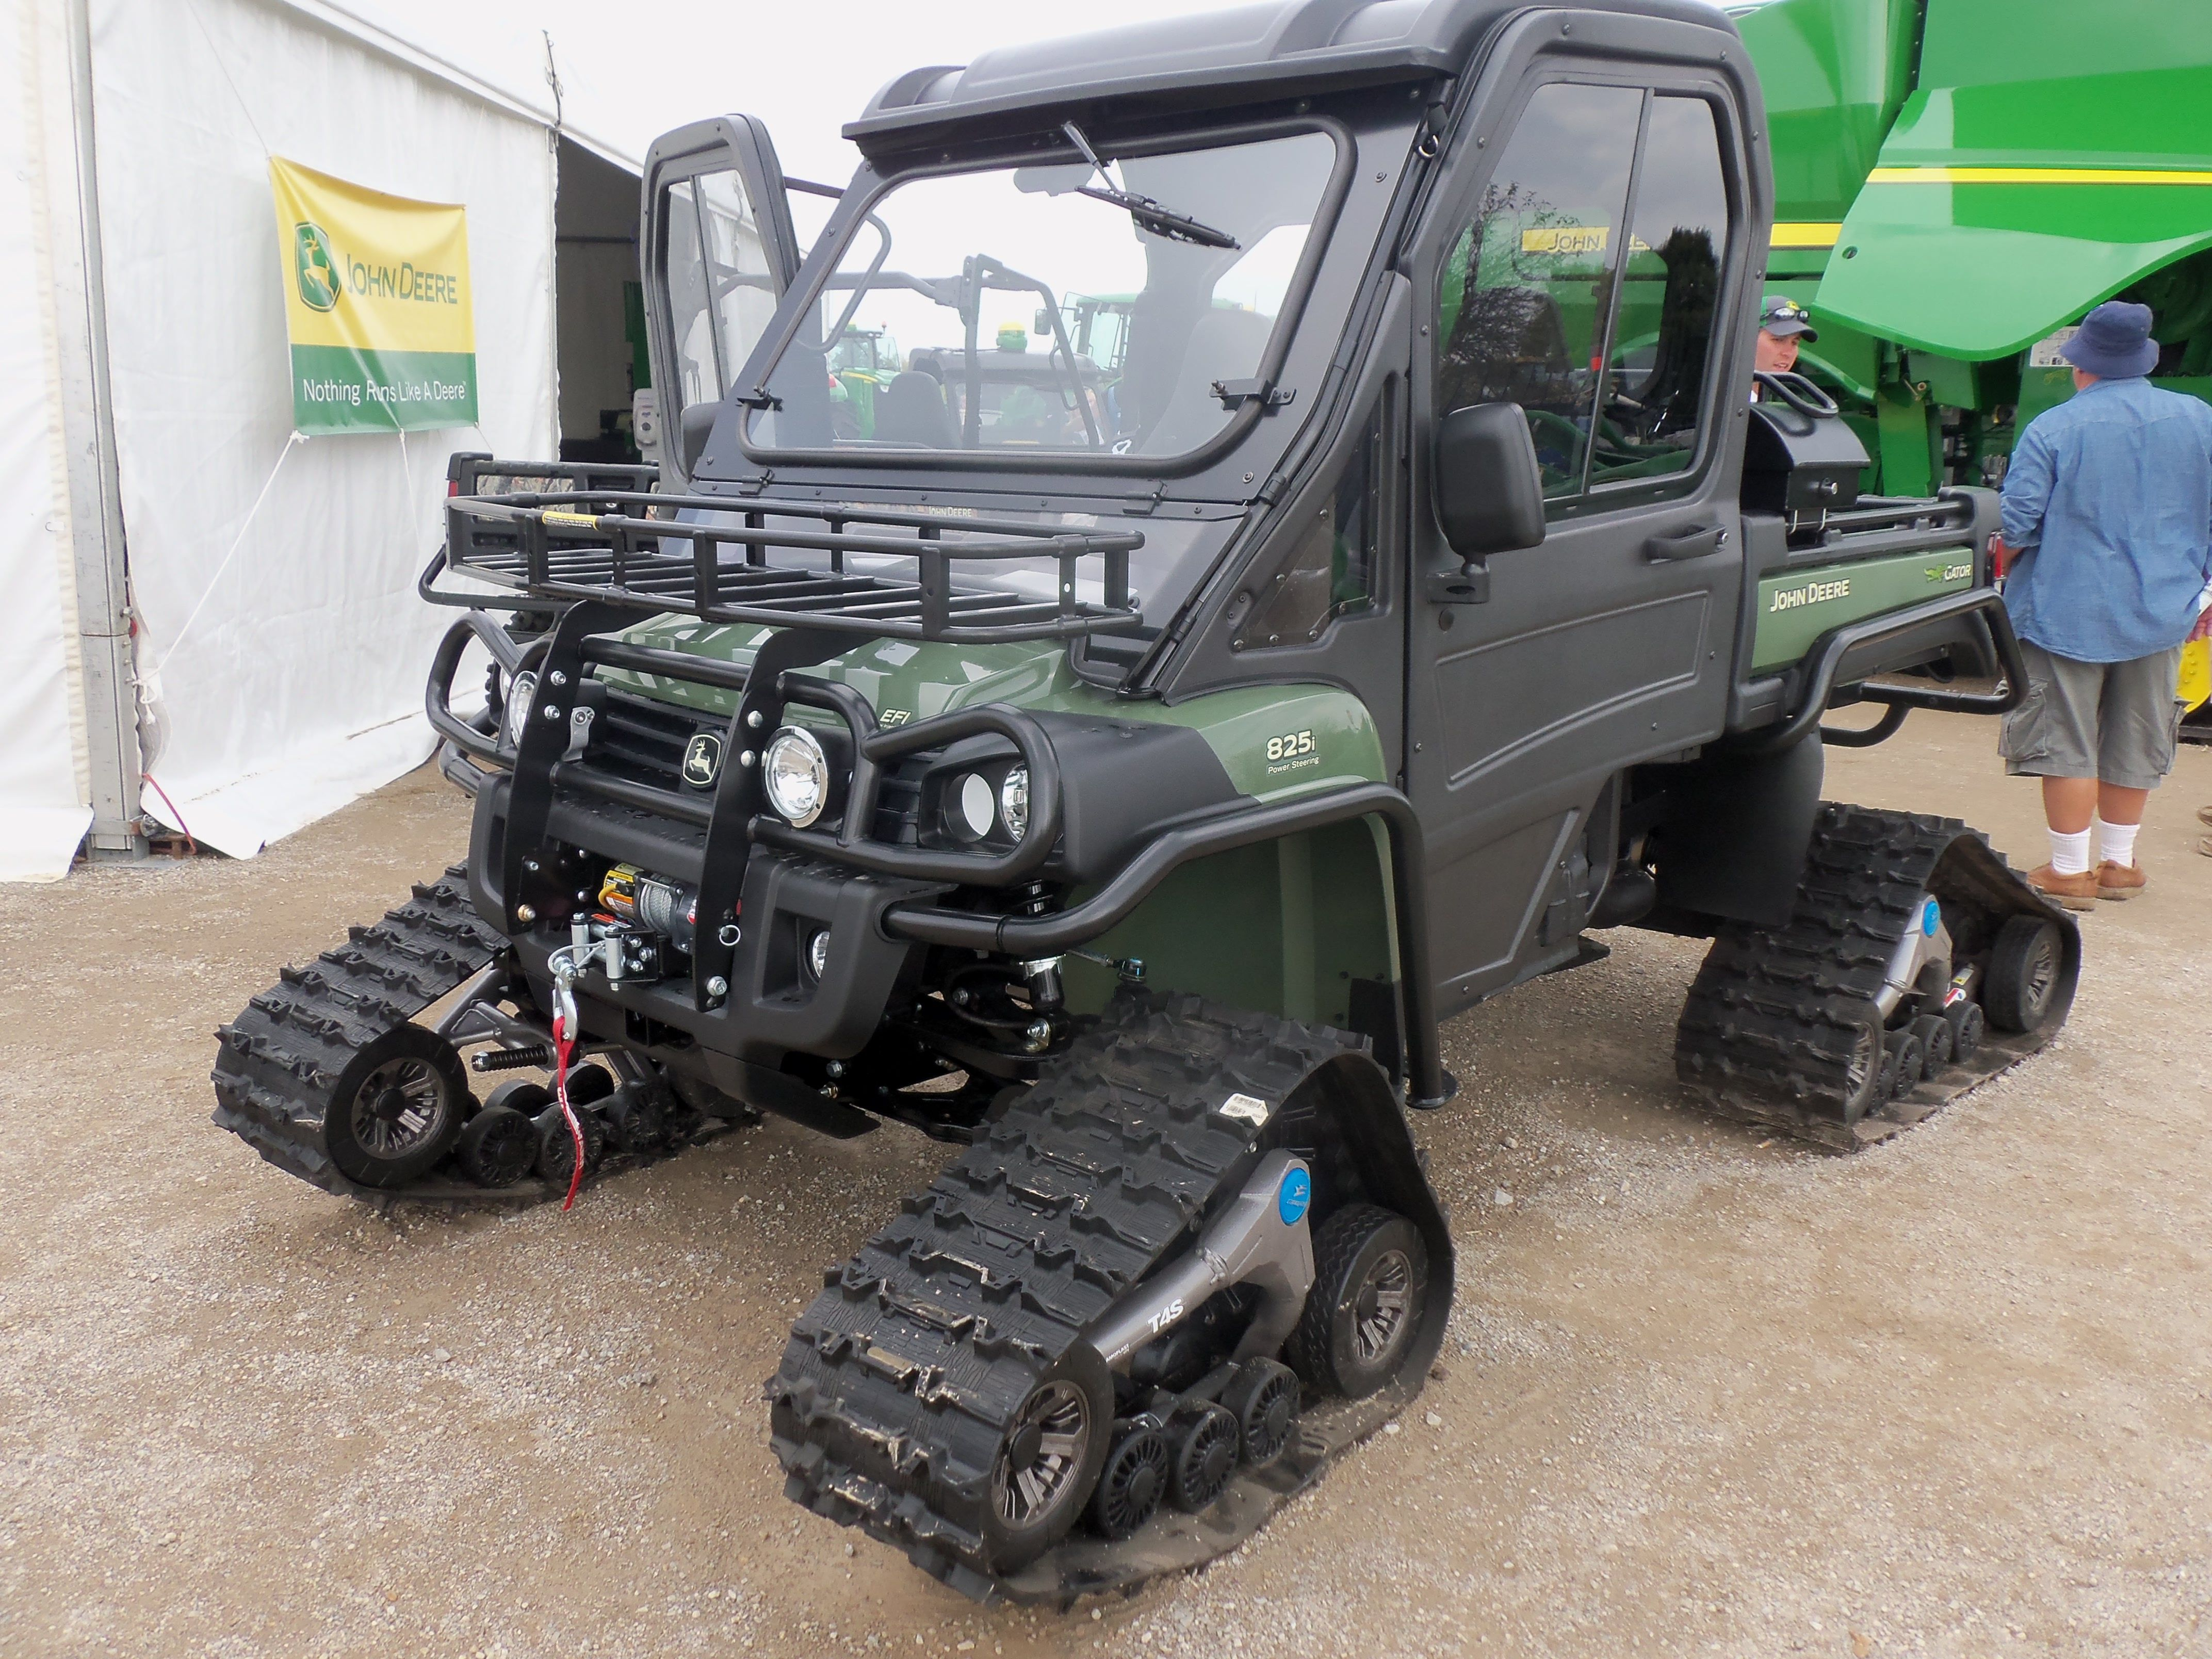 medium resolution of john deere gator 825i the tracks on this gator are brand new according to the jd guy we talked to here